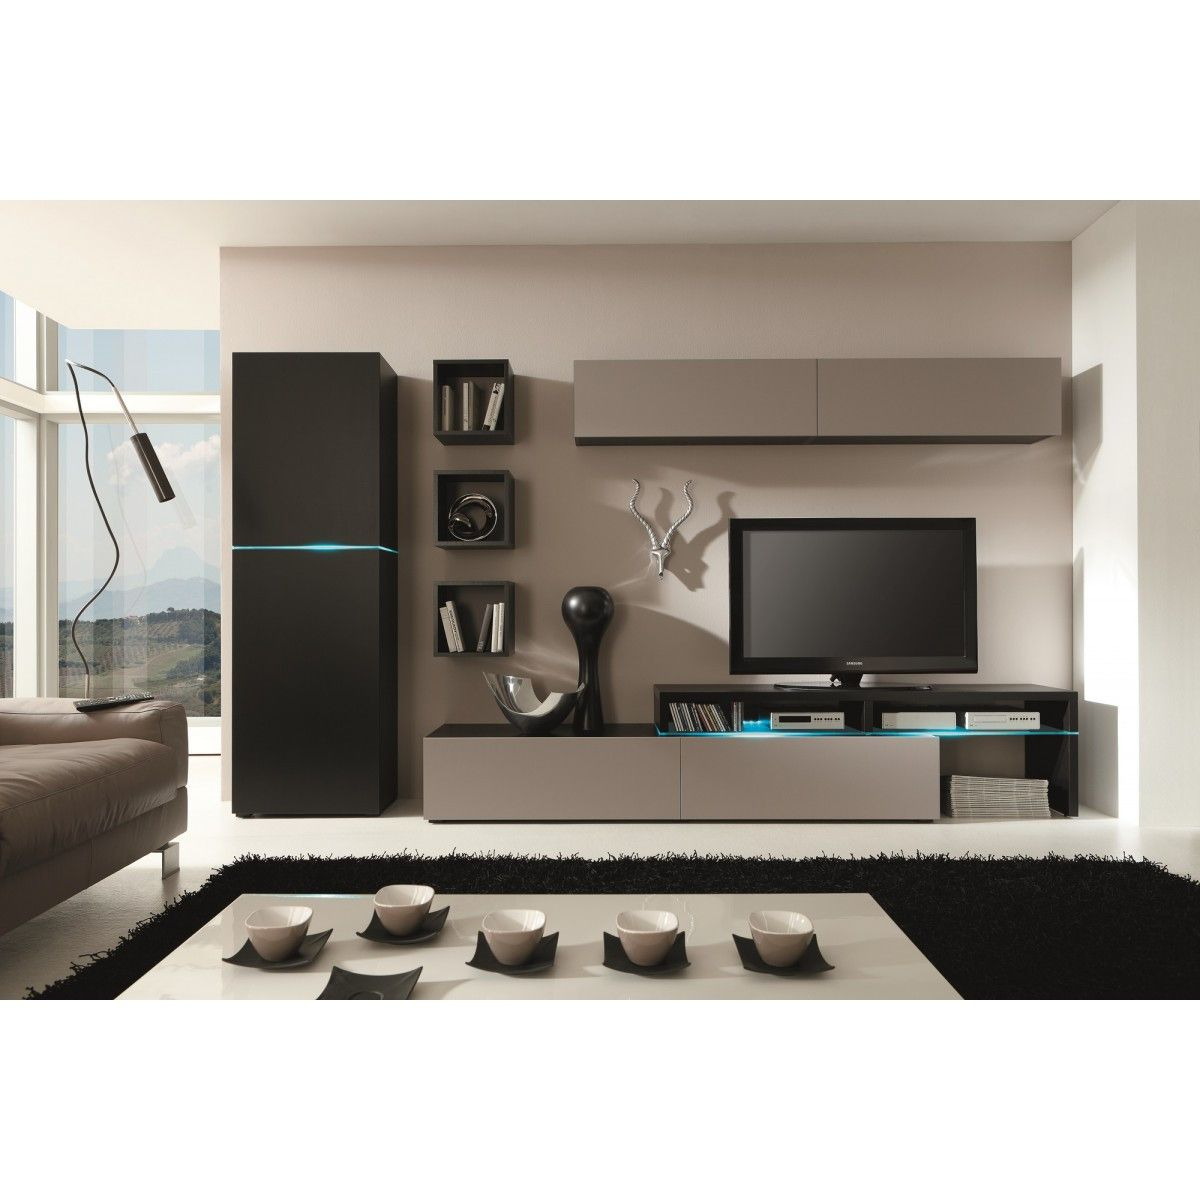 Material mdf melamine tempered glass led lighting the - Wall units for living room mumbai ...